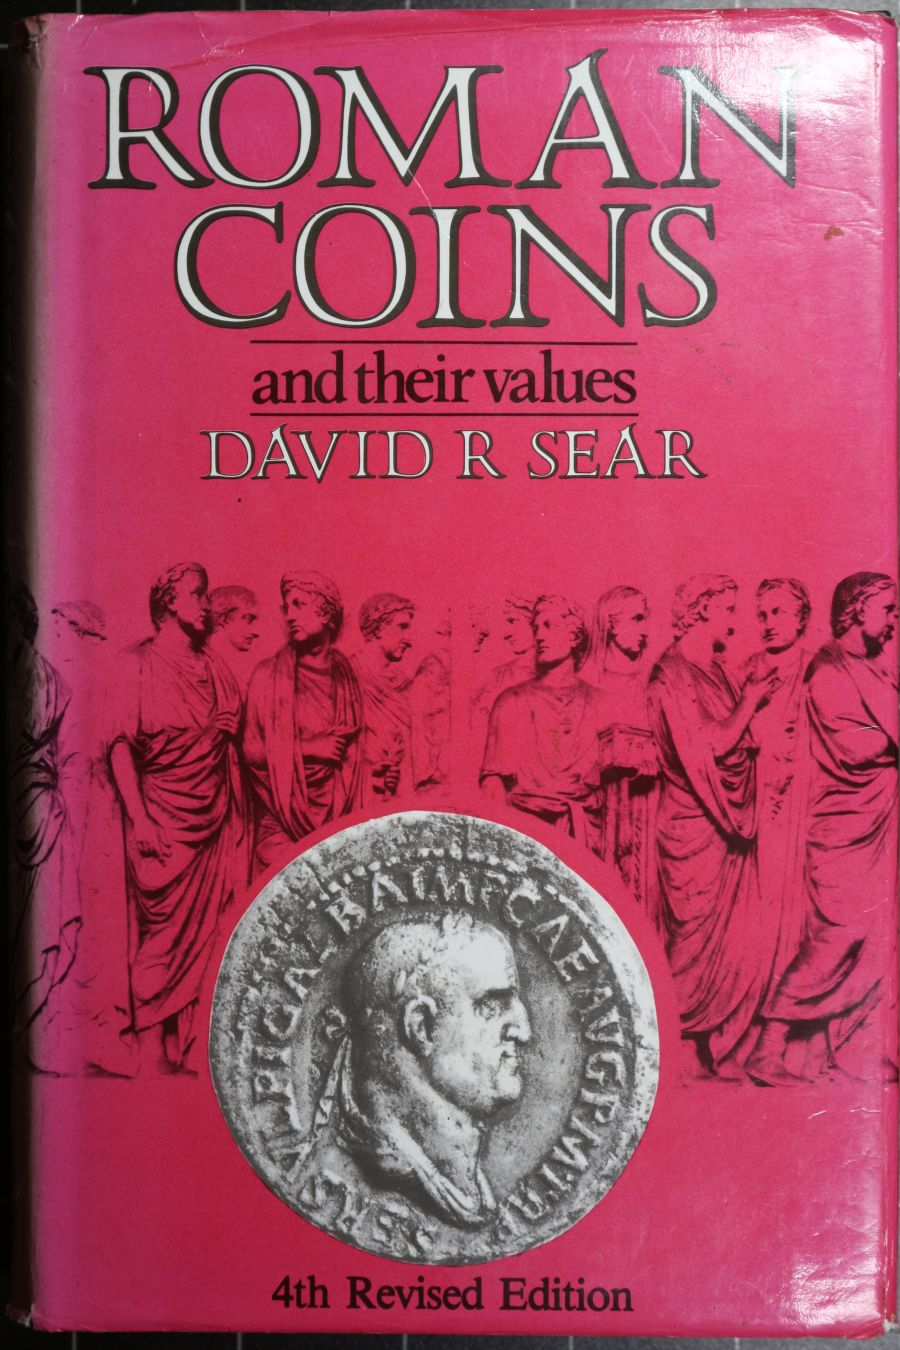 Roman coins and their values, David R. Sear, 4th revised edition